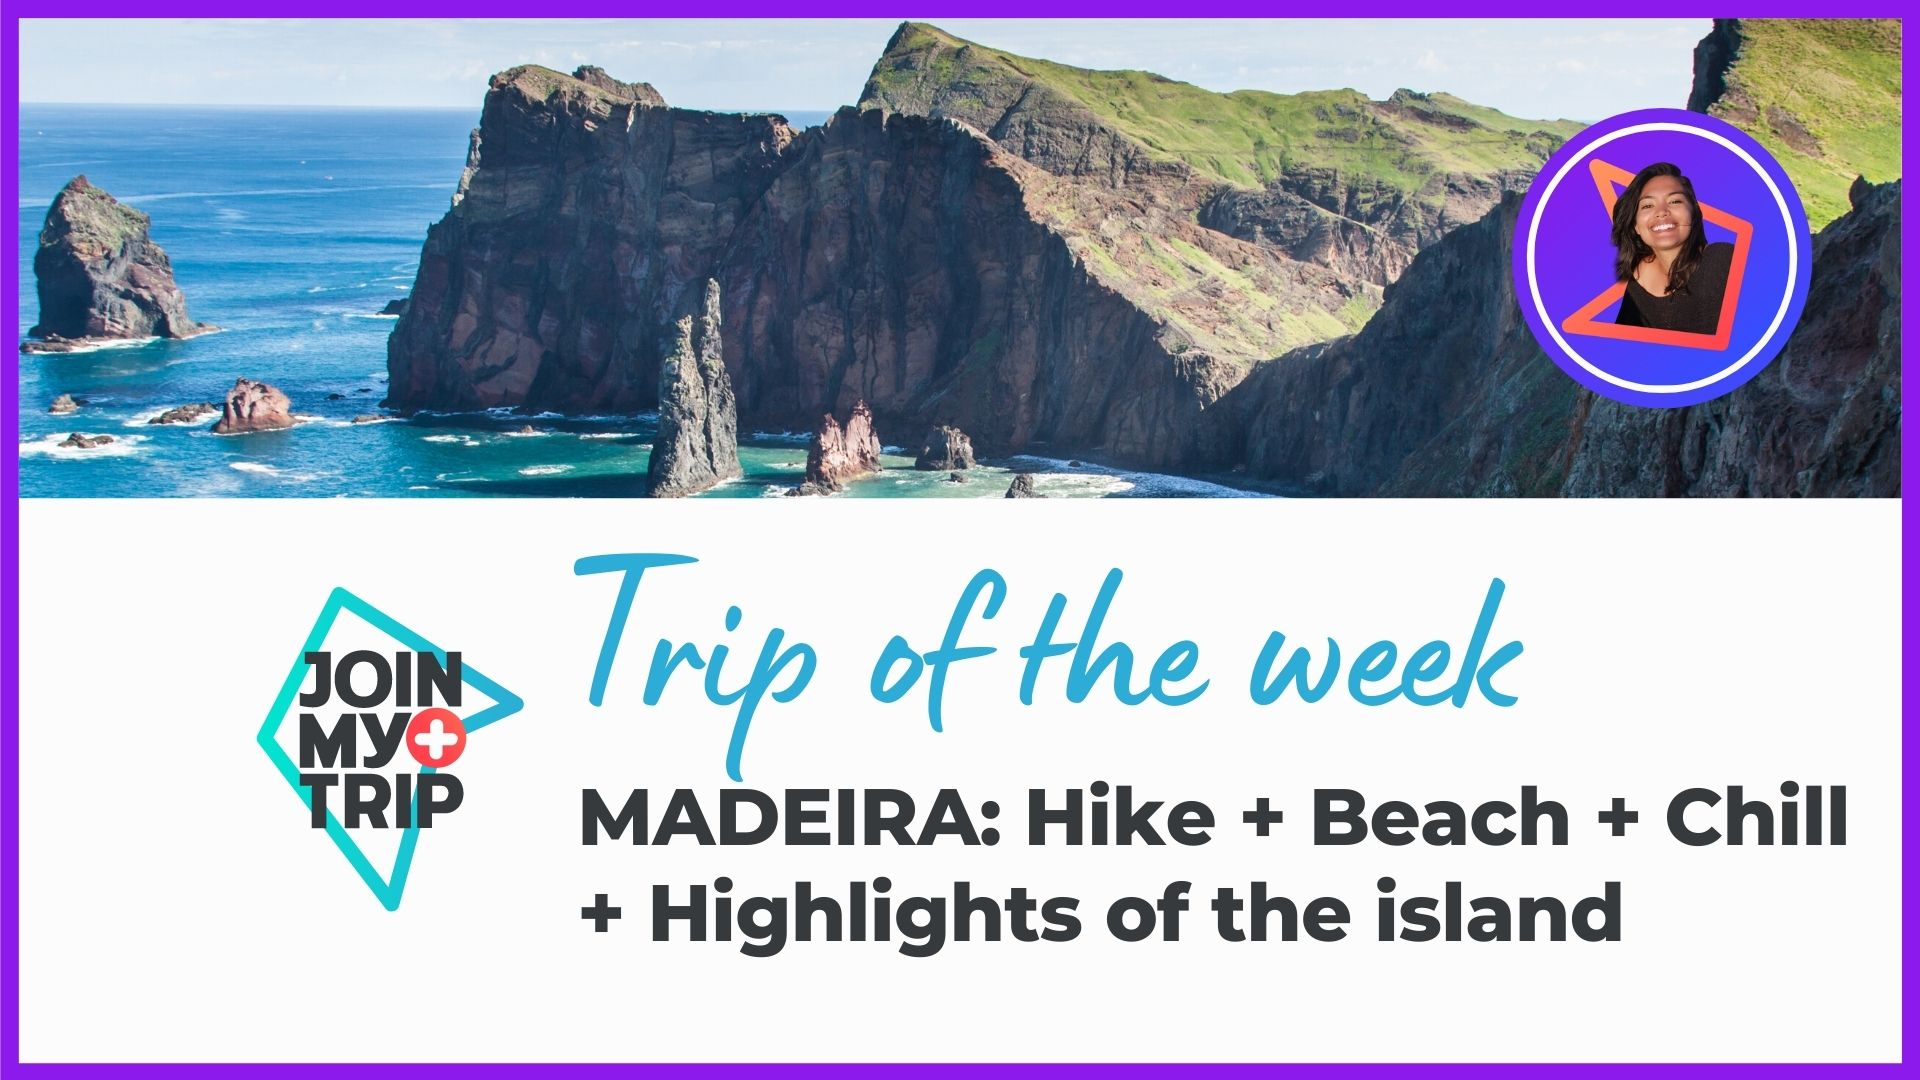 Madeira hike, beach and chill on the trip of the week show.